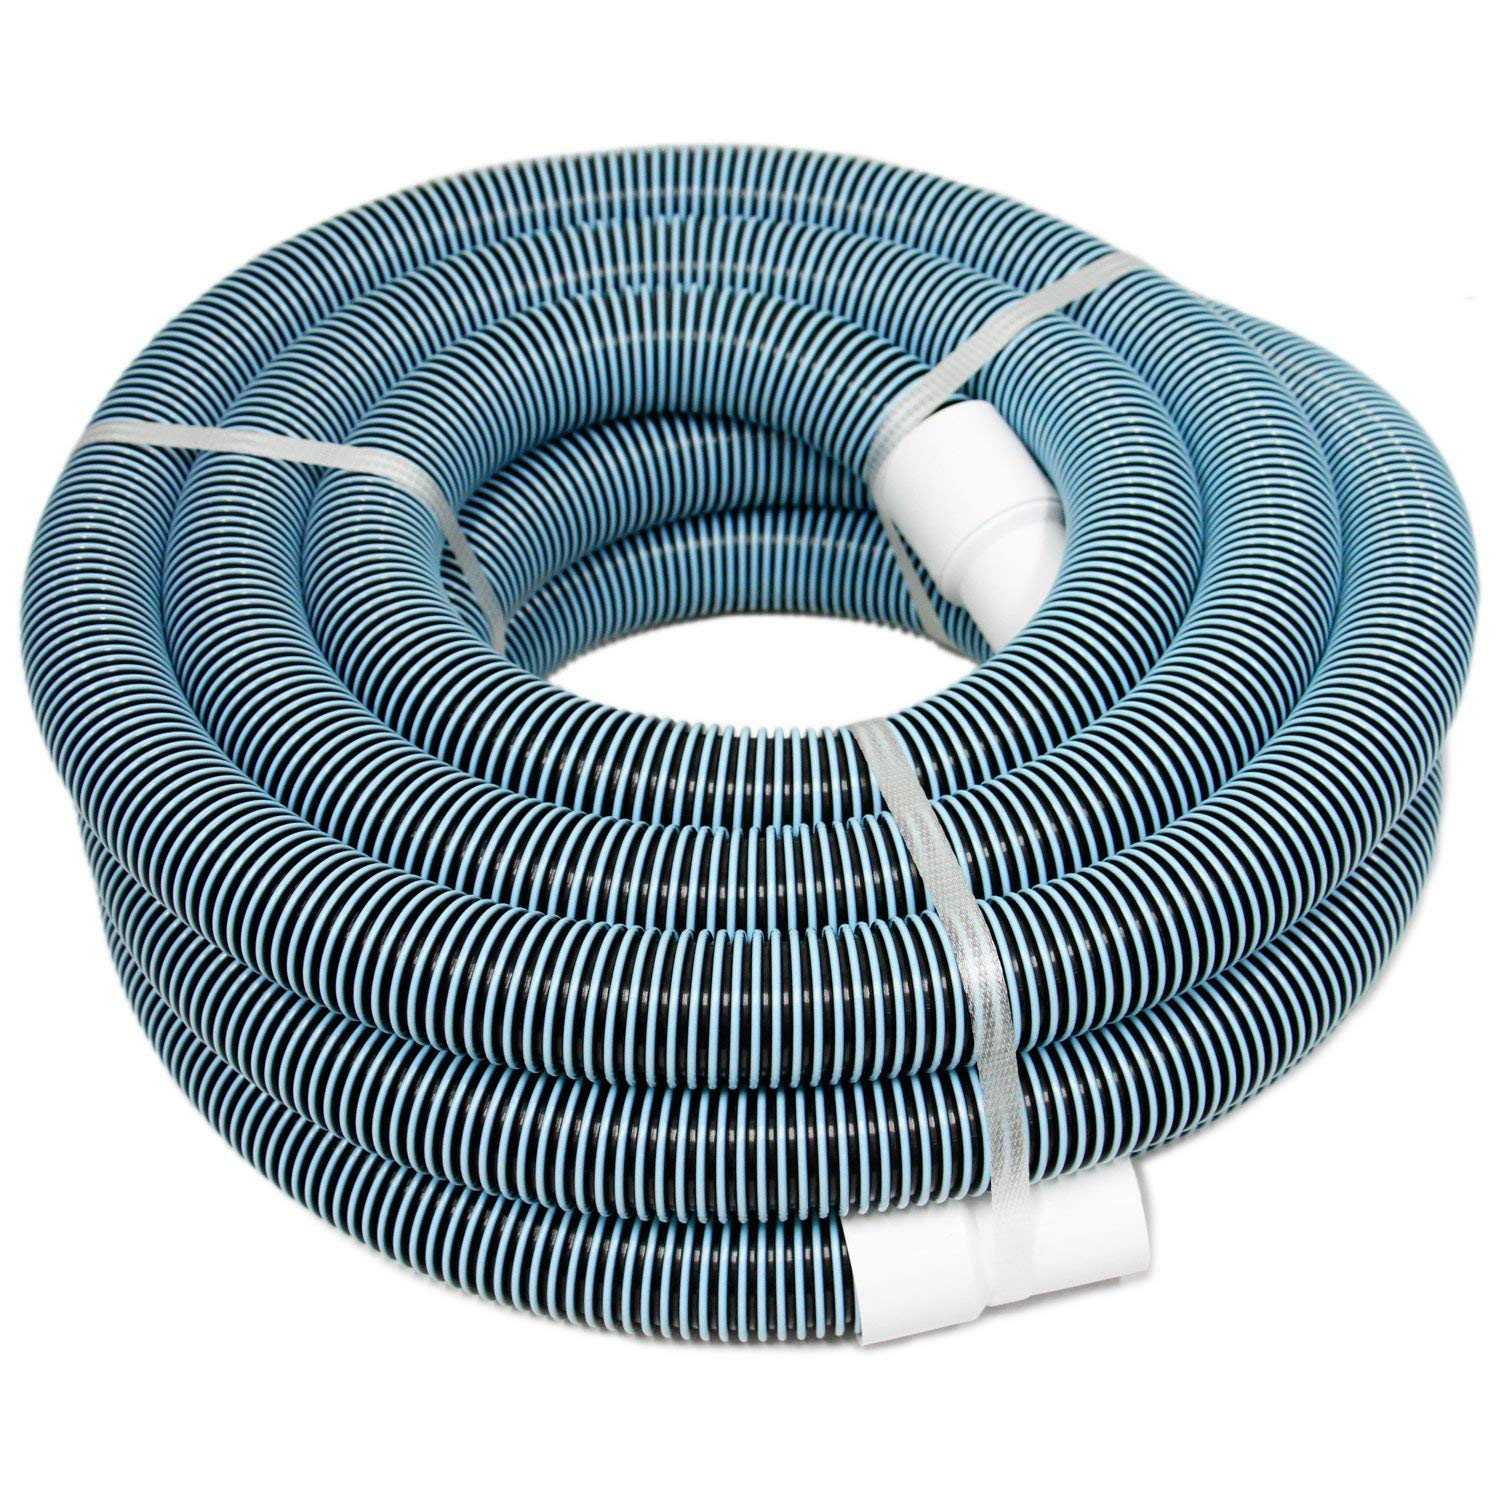 POOLWHALE 1.5''x 36ft 2-Color Heavy Duty Spiral Wound Vacuum Hose with Swivel Cuff by POOLWHALE